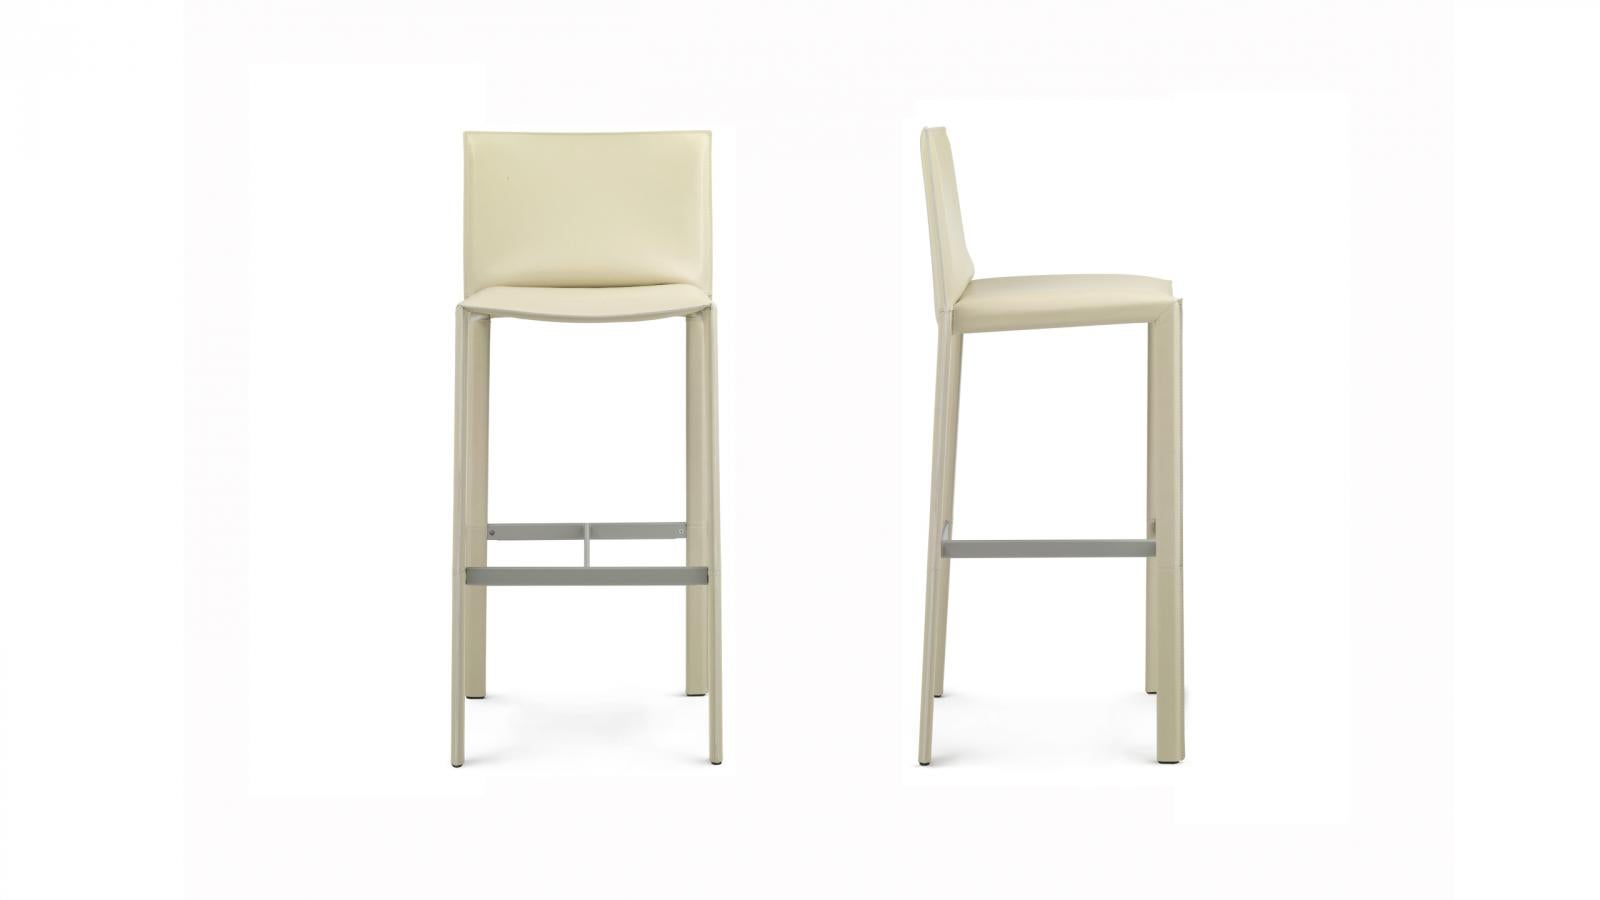 Italian Modern Leather Bar Stools 09, Made In Italy, New For Sale At 1stdibs